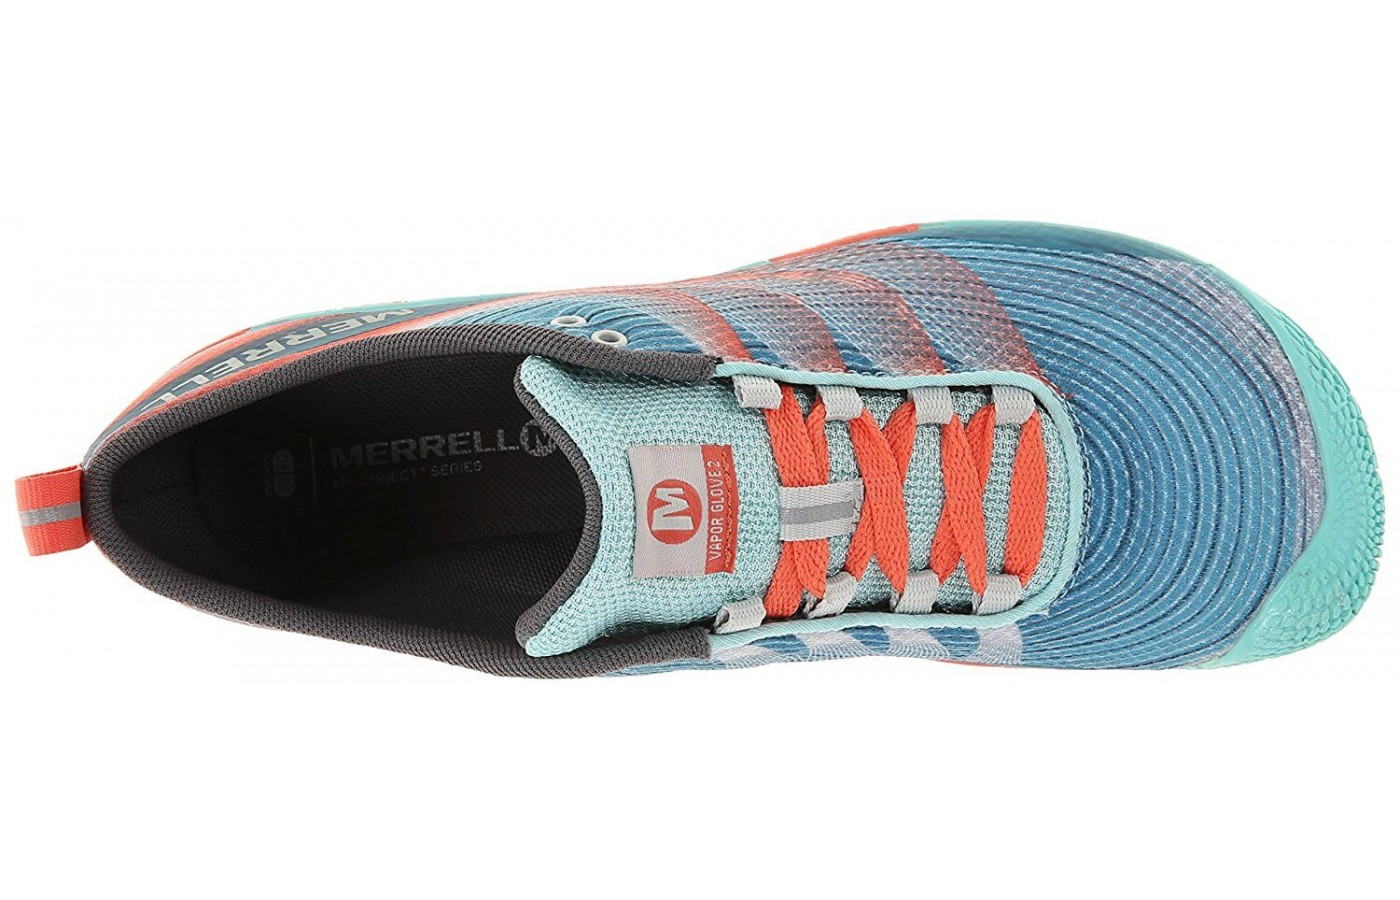 The Merrell Vapor Glove 3 features a wide toe box